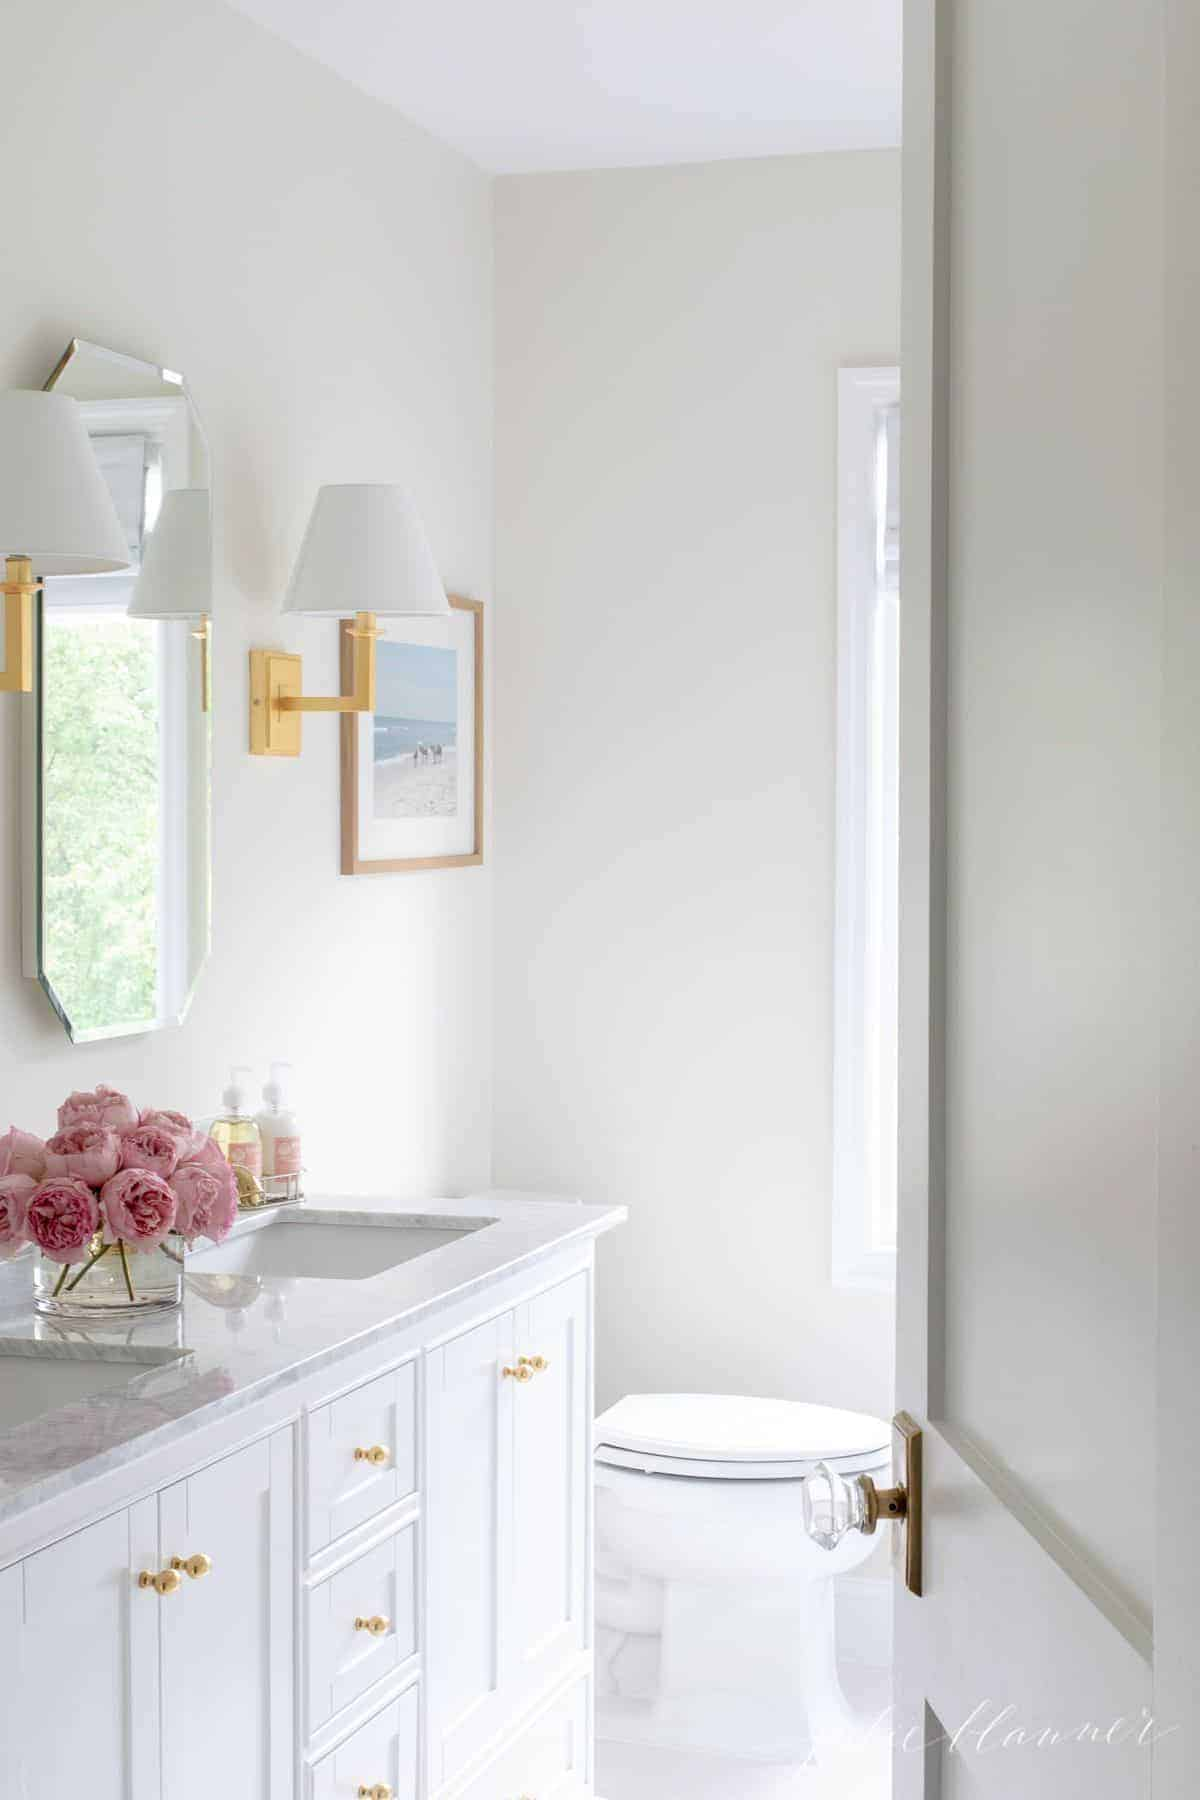 A look into a white bathroom with a door slightly ajar. Gold finishes and pink flowers on the vanity. #spabath